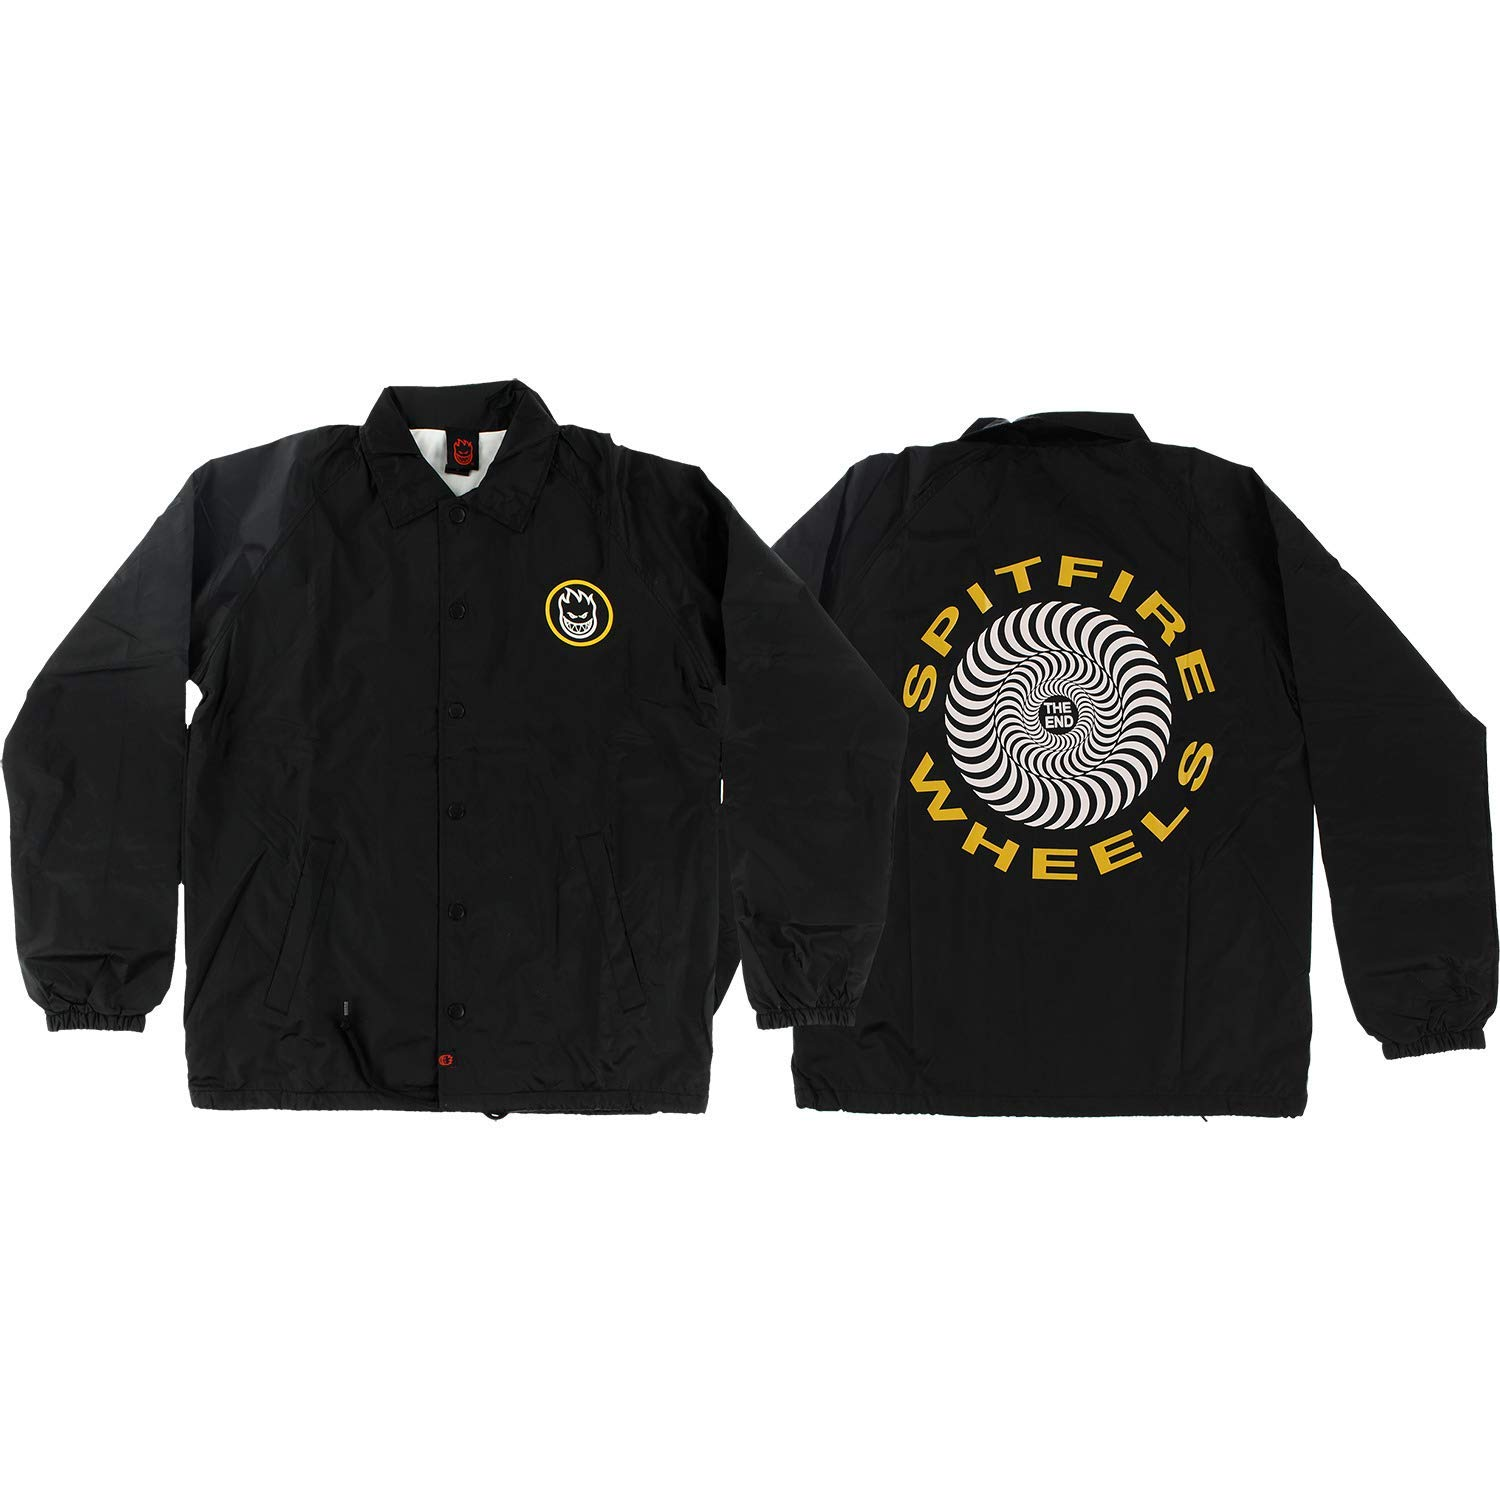 5dbc33989f Get Quotations · Spitfire Wheels Retro Classic Black/Yellow Coaches Jacket  - Small